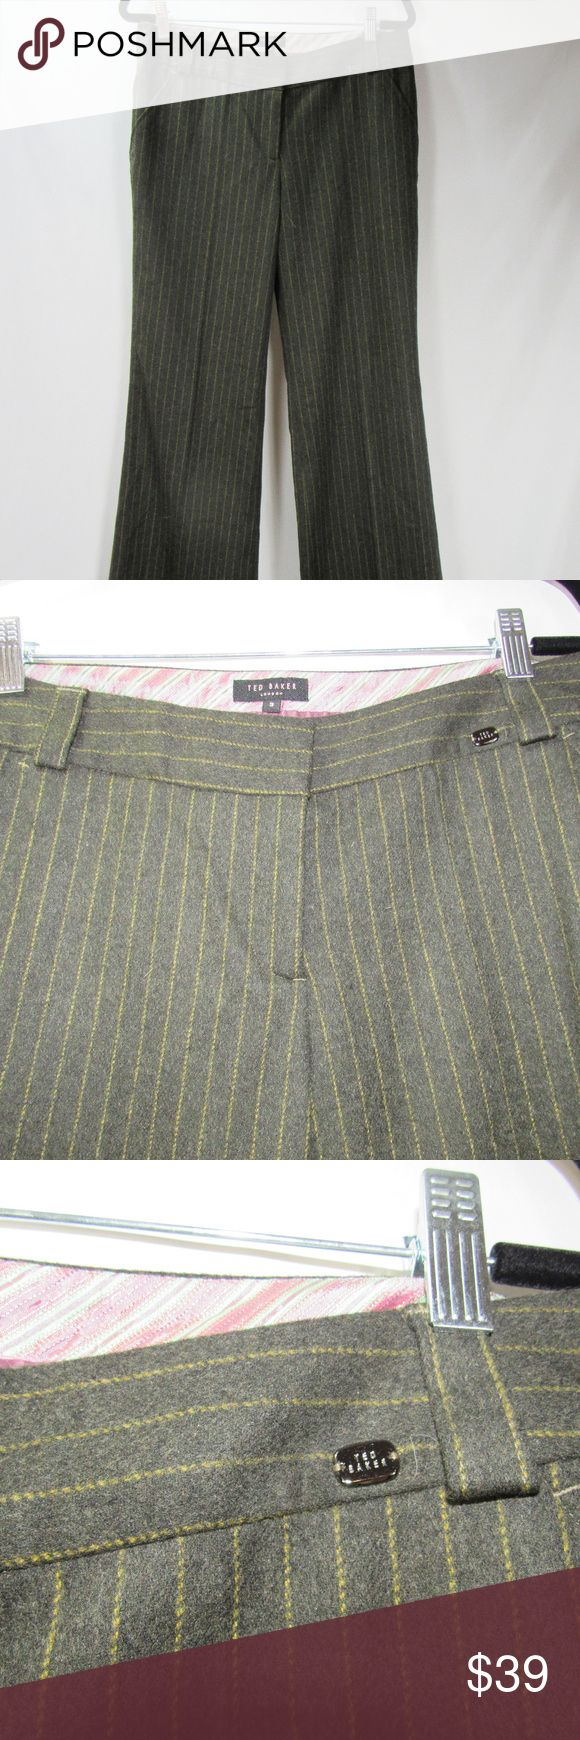 Ted Baker Tall 3 Wool Brown Pinstripe Dress Pants Women's size 3 Tall Ted Baker wool dress pants in brown pinstripe. High quality pants! 34 X 36. Excellent condition with no flaws or notable wear. Fast shipping! Thanks for looking. Ted Baker Pants Trousers